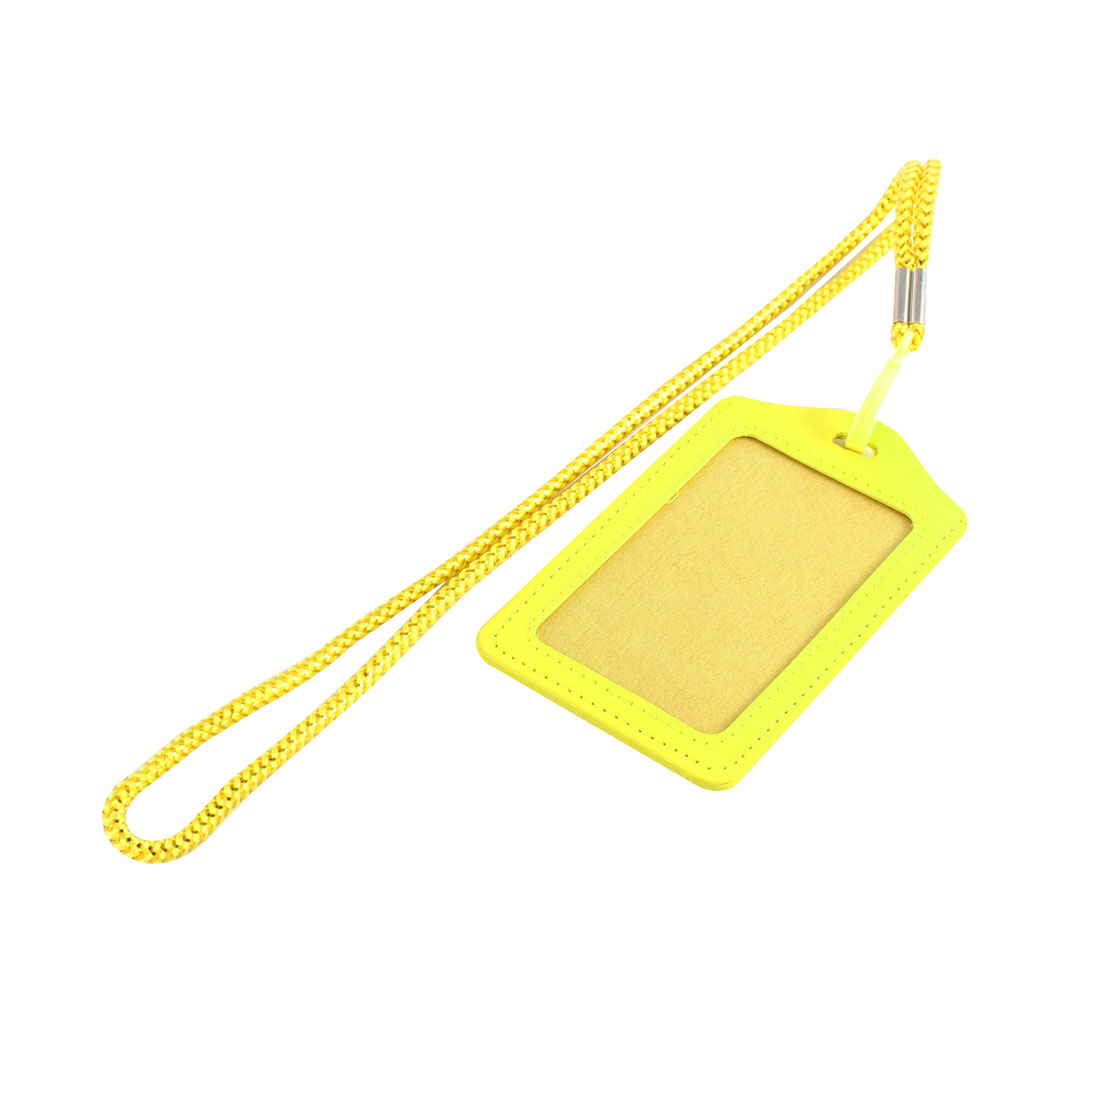 School Company Faux Leather Vertical Work Name ID Card Tag Badge Holder Yellow w String